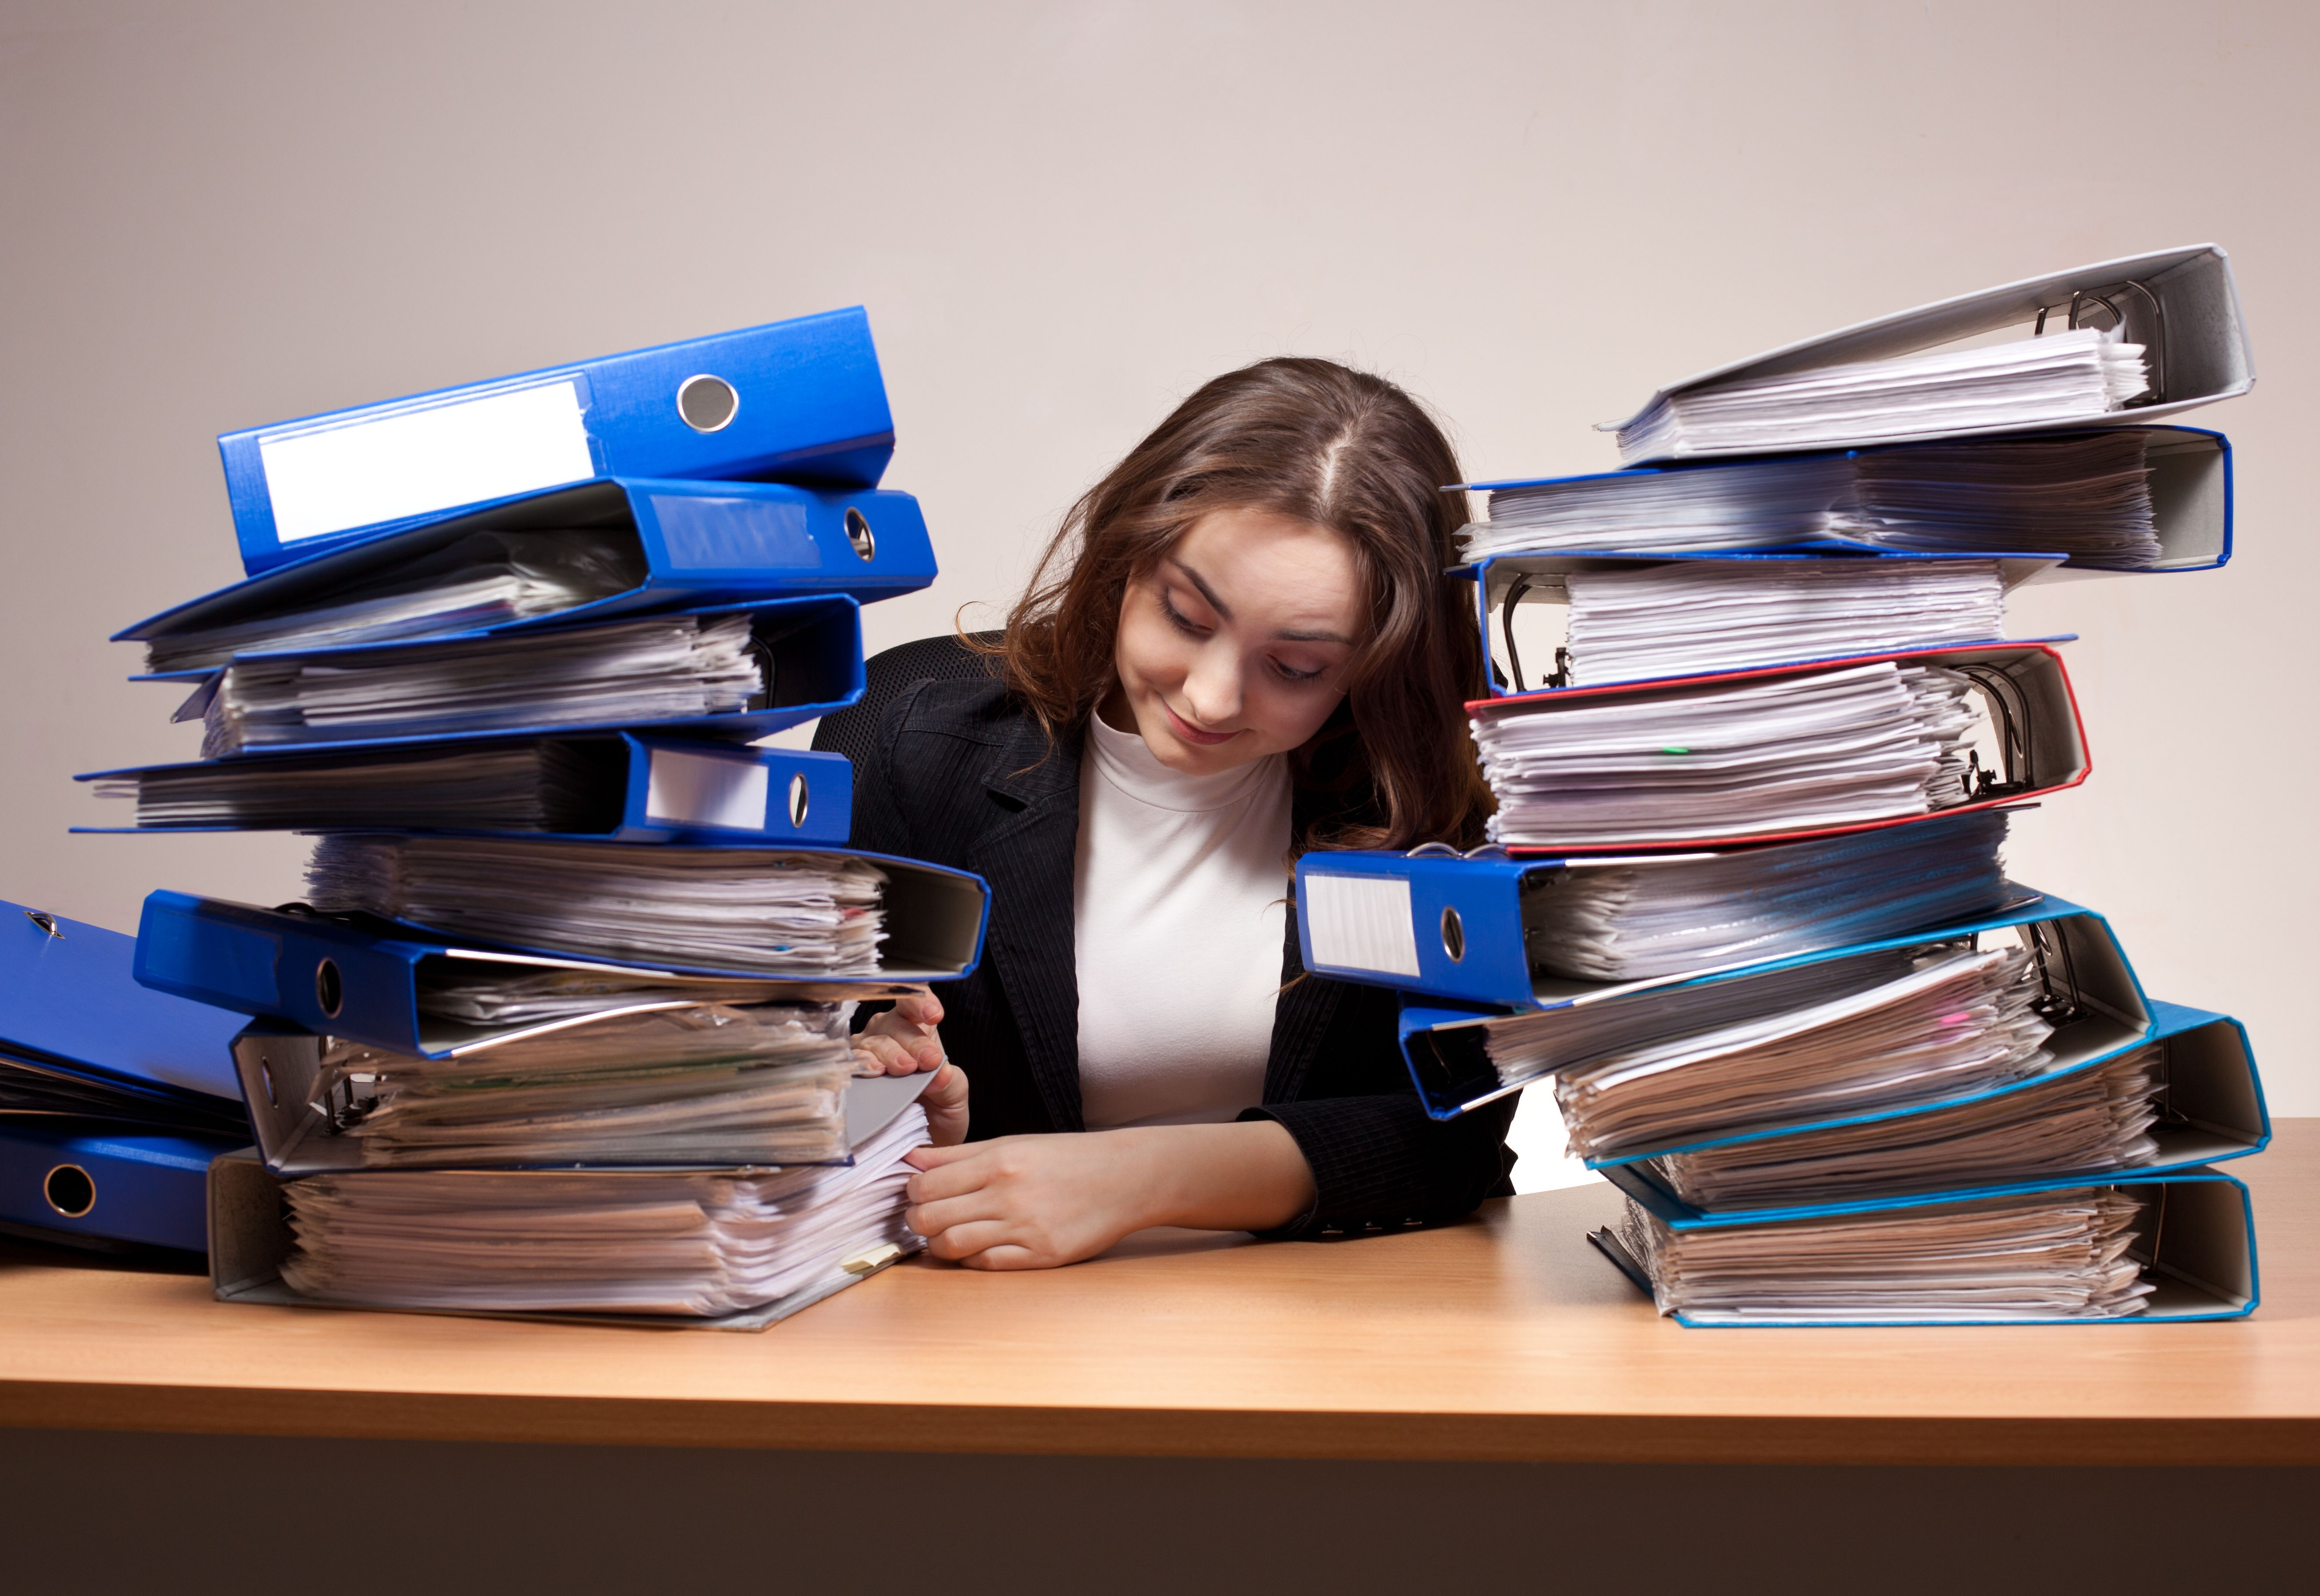 A female staff is surrounded by many files